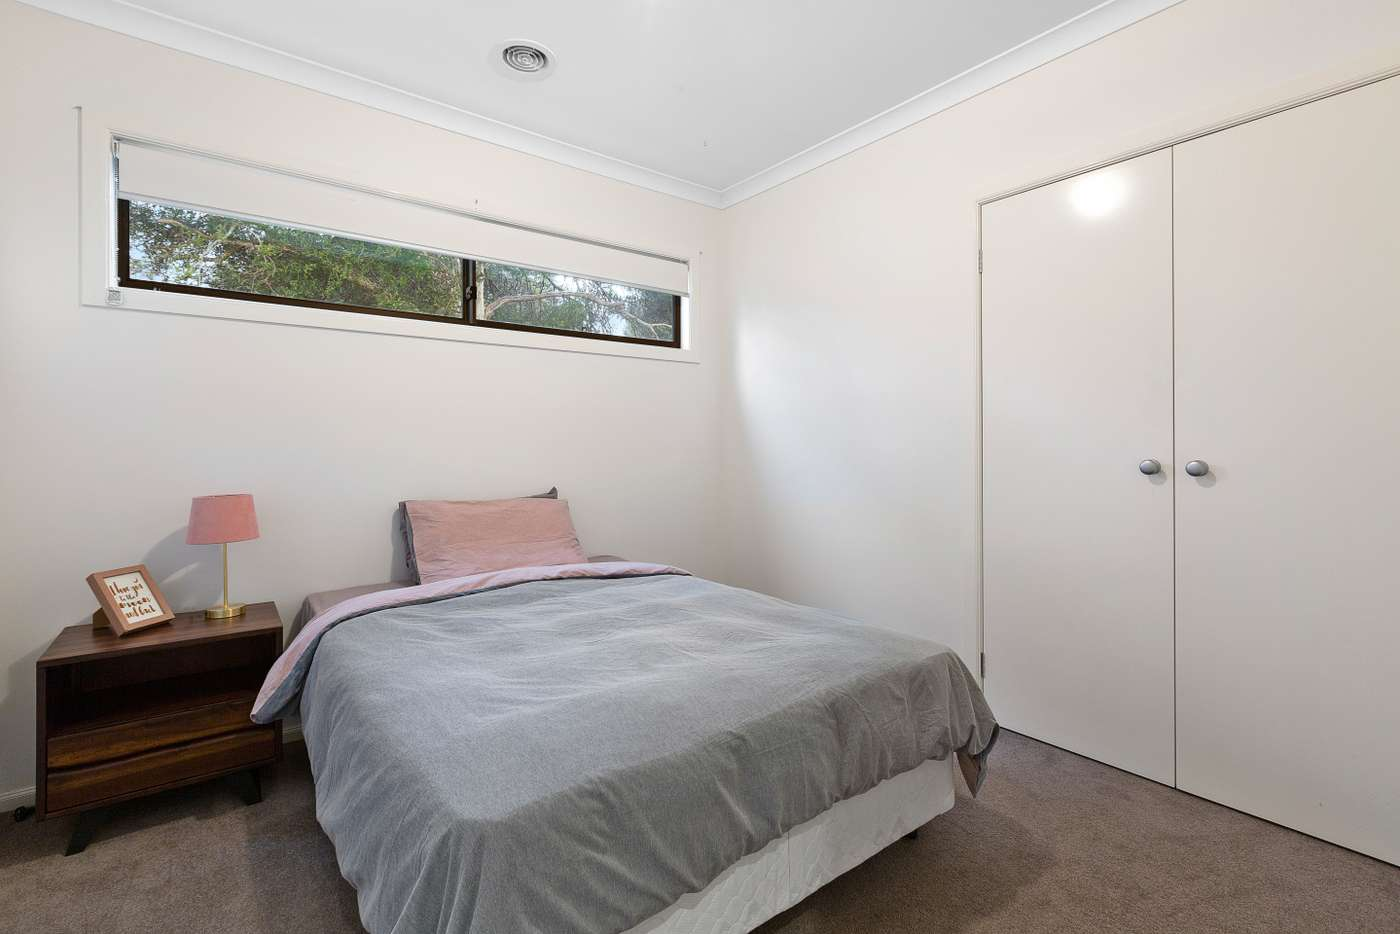 Fifth view of Homely house listing, 12A Morris Road, Croydon VIC 3136